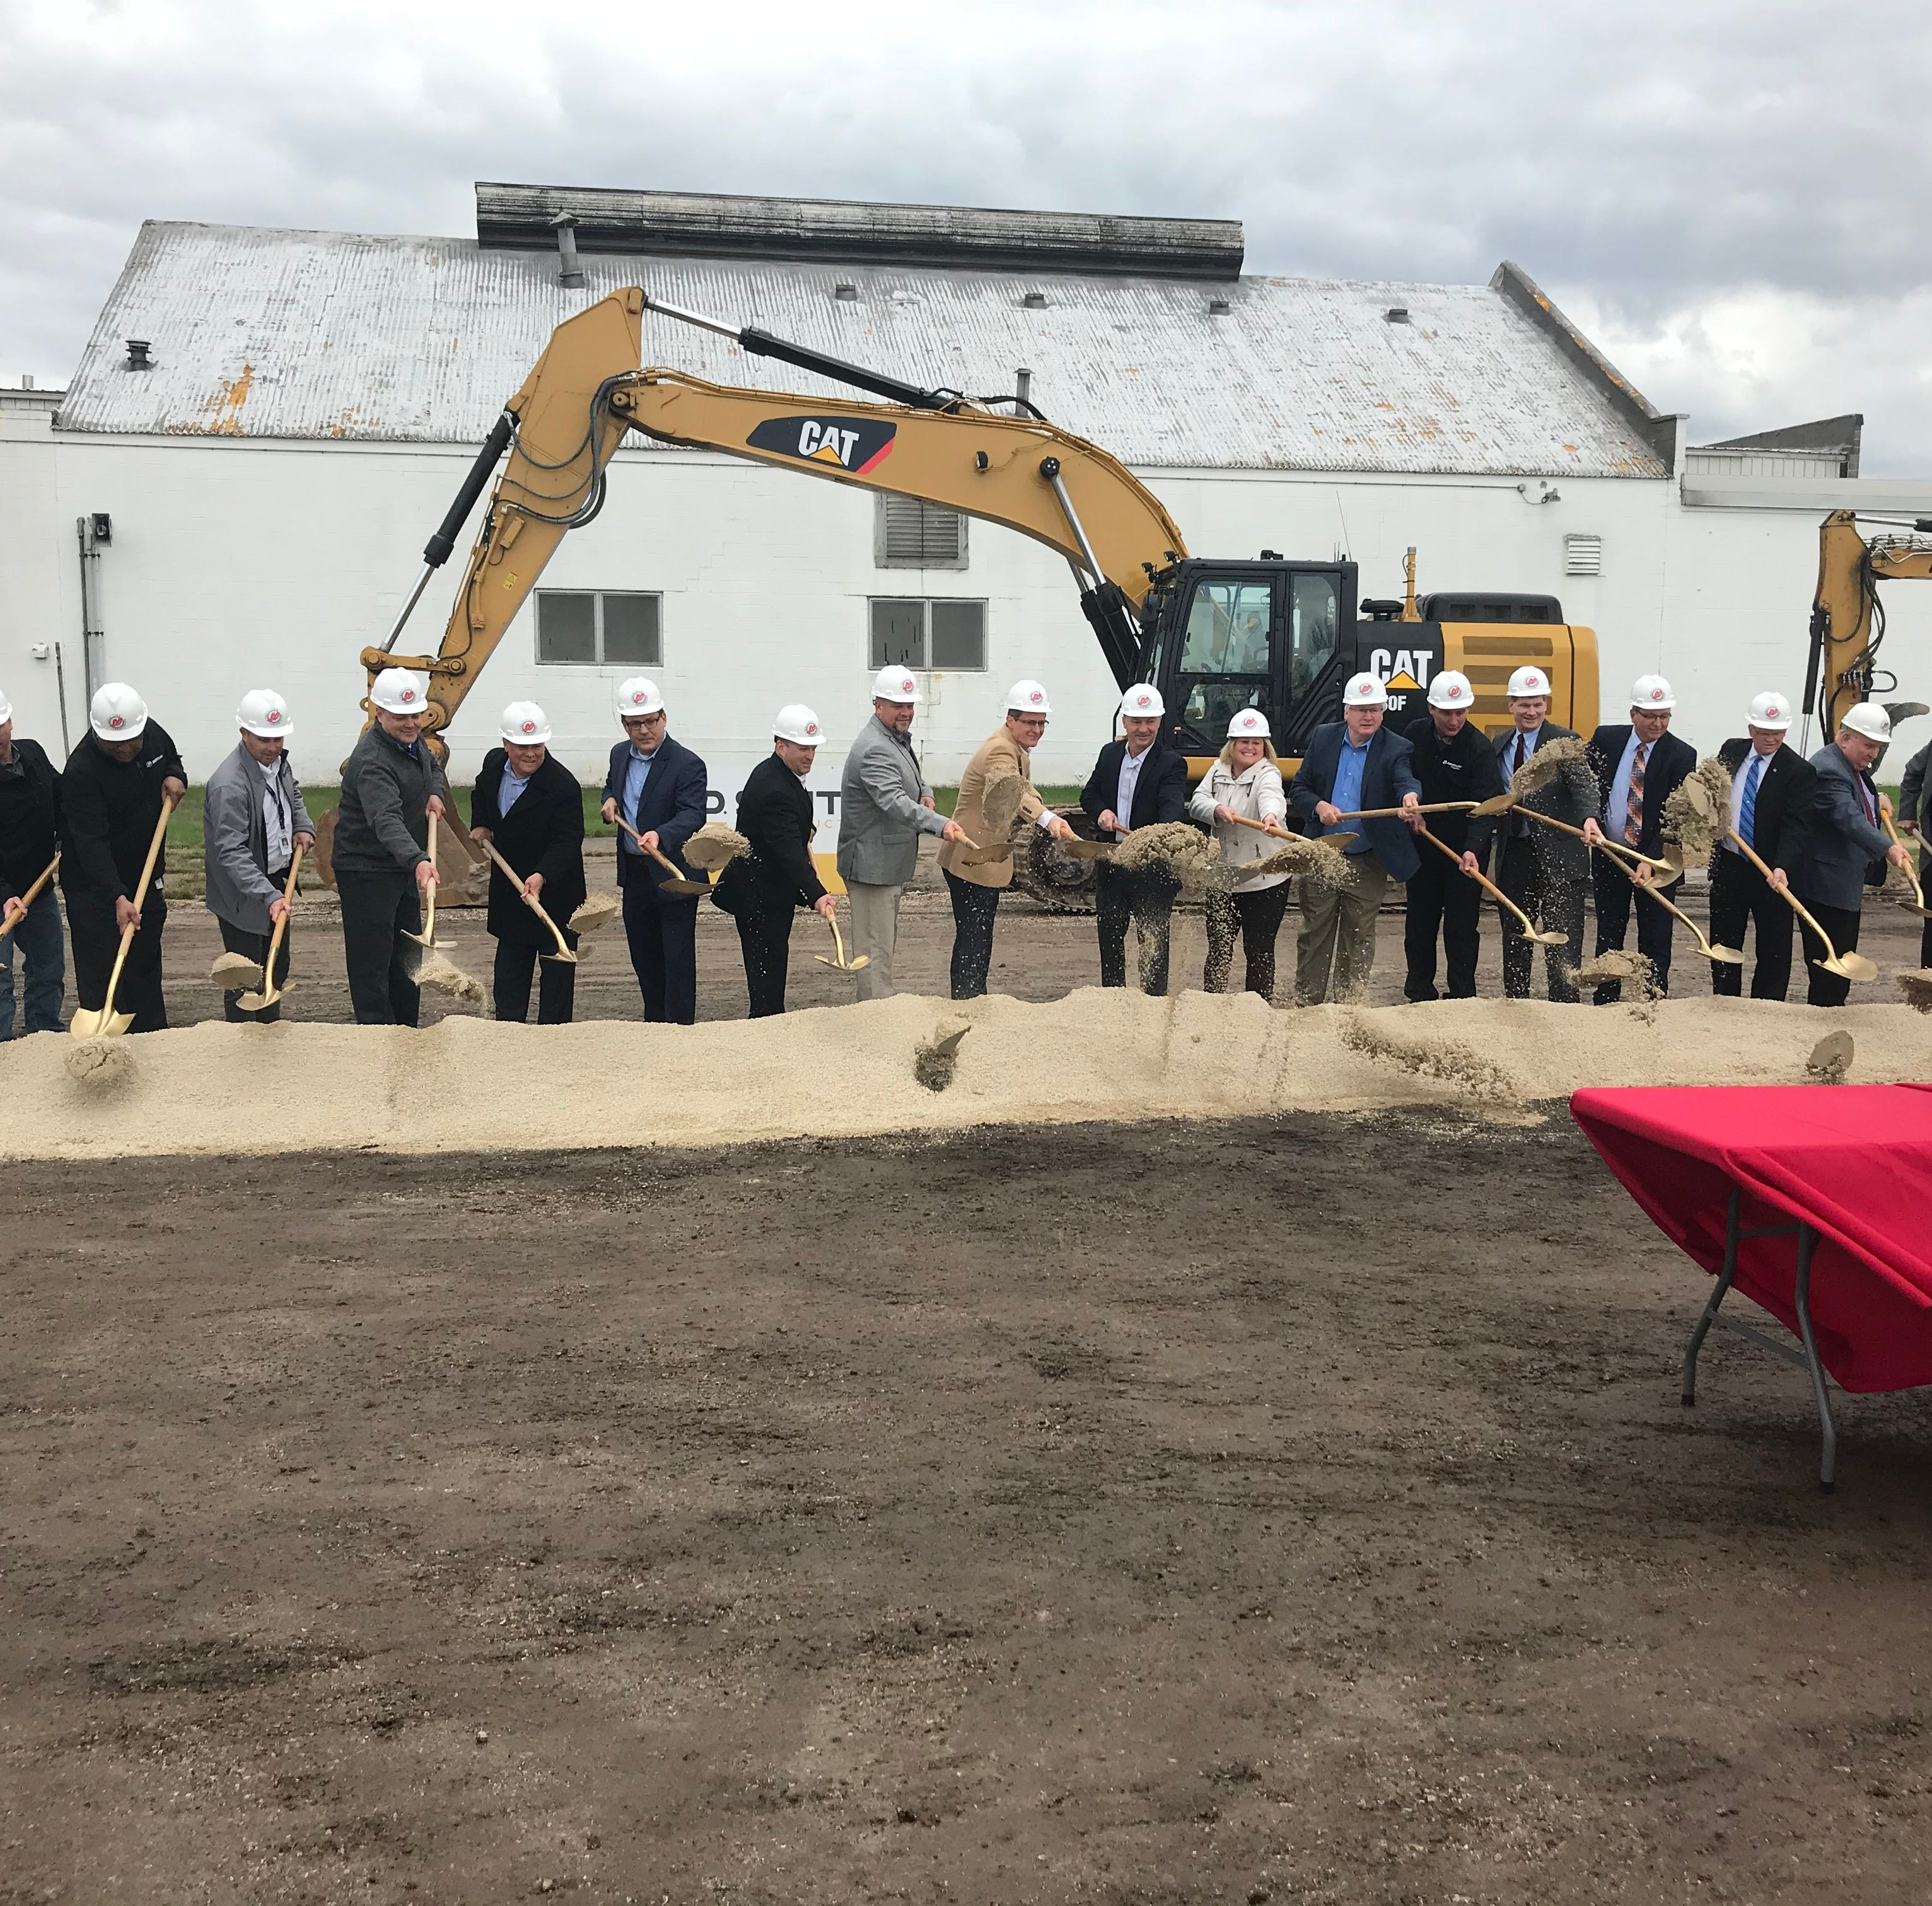 Mercury Marine breaks ground on 30,000-square-foot propeller plant expansion